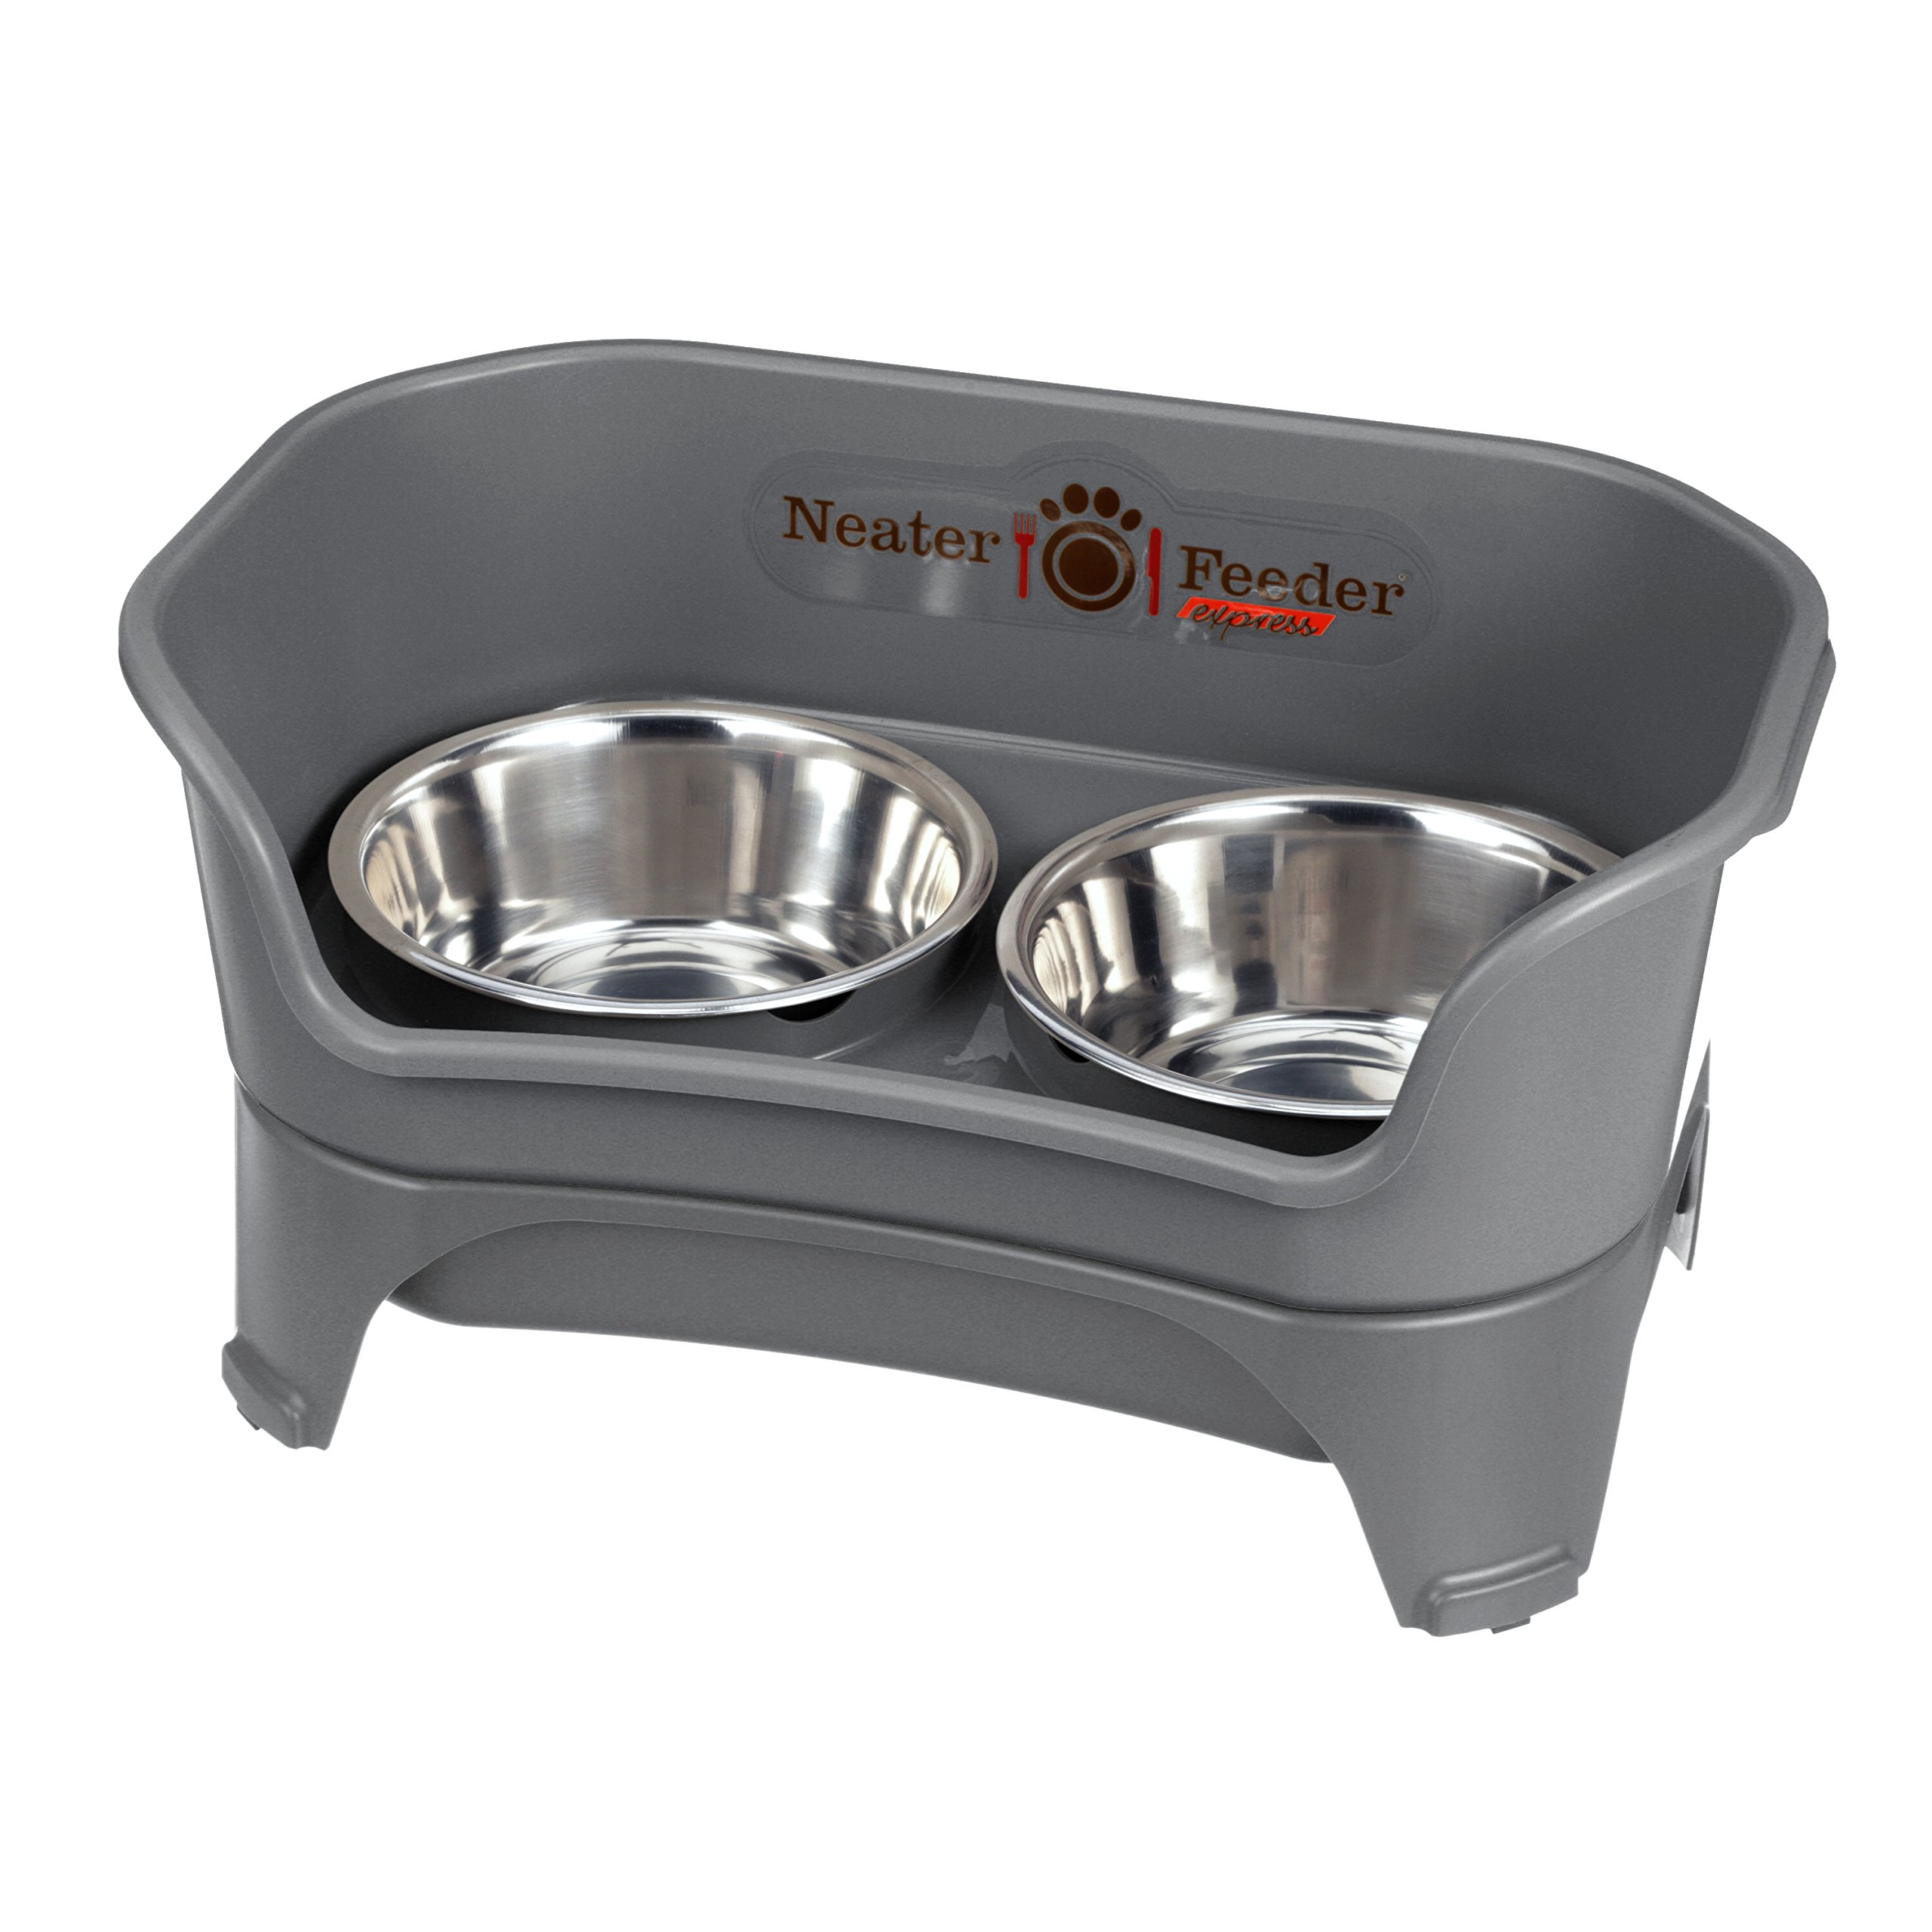 Neater Feeder Express (Medium to Large Dog, Gunmetal) - with Stainless Steel, Drip Proof, No Tip and Non Slip Dog Bowls and Mess Proof Pet Feeder by Neater Feeder